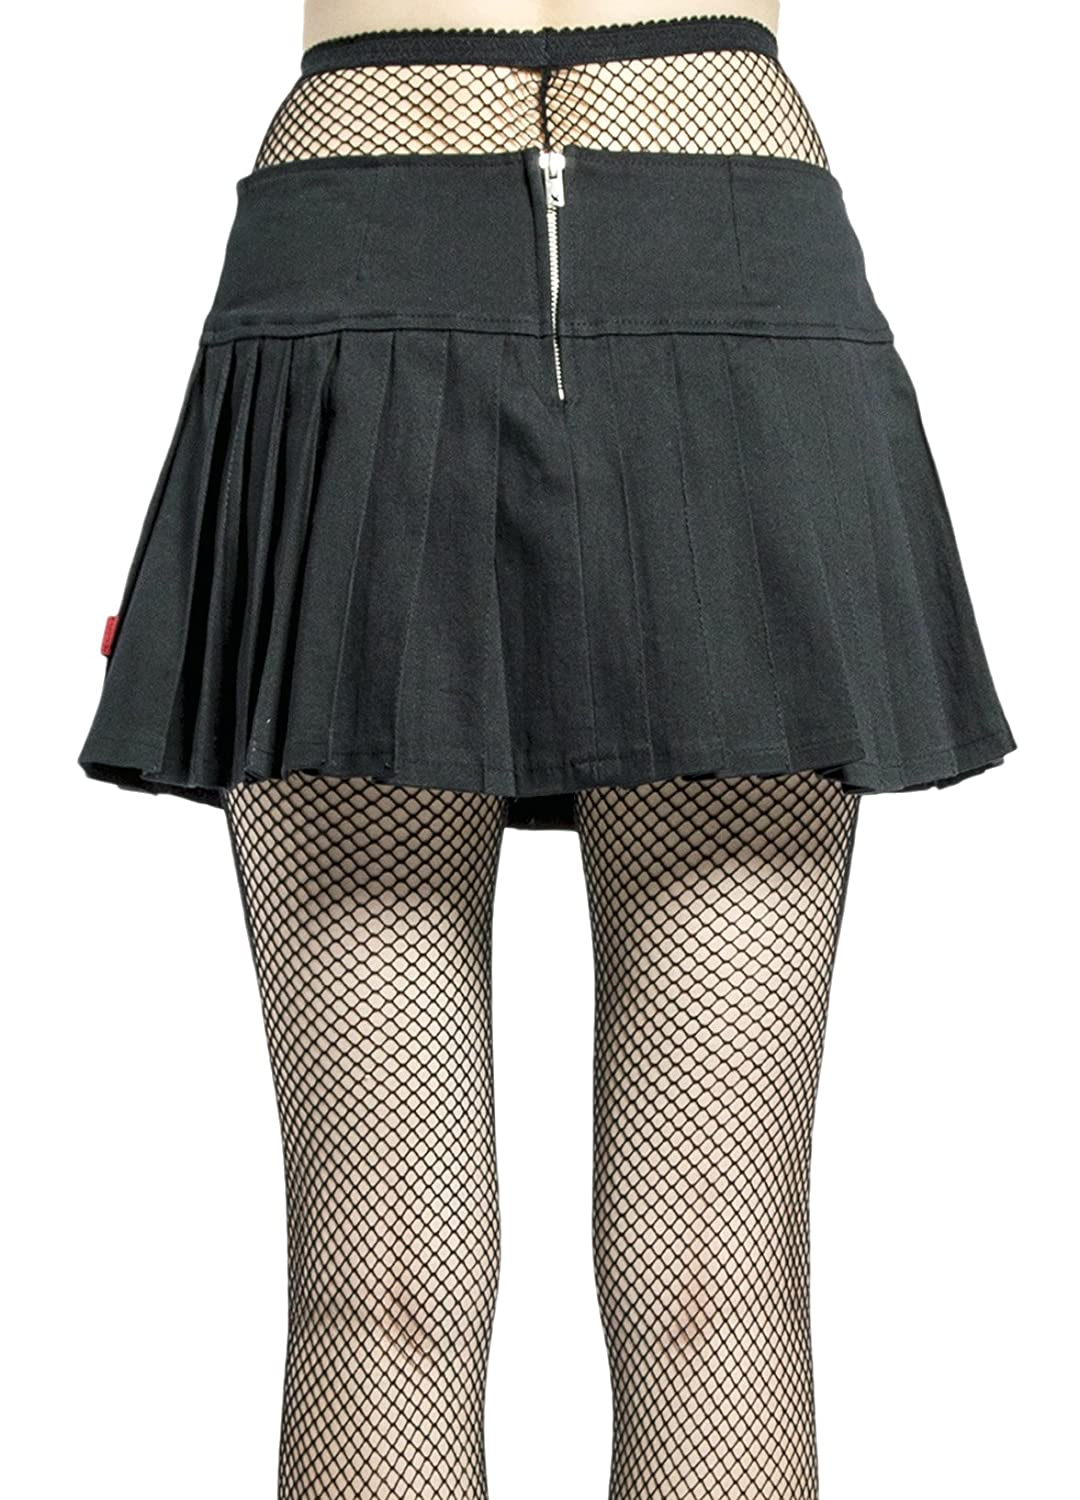 45e0d23d8f Tripp NYC Gothic Punk Metal Rock Star Band Black Pleated Belted Mini Skirt  (M) at Amazon Women's Clothing store: